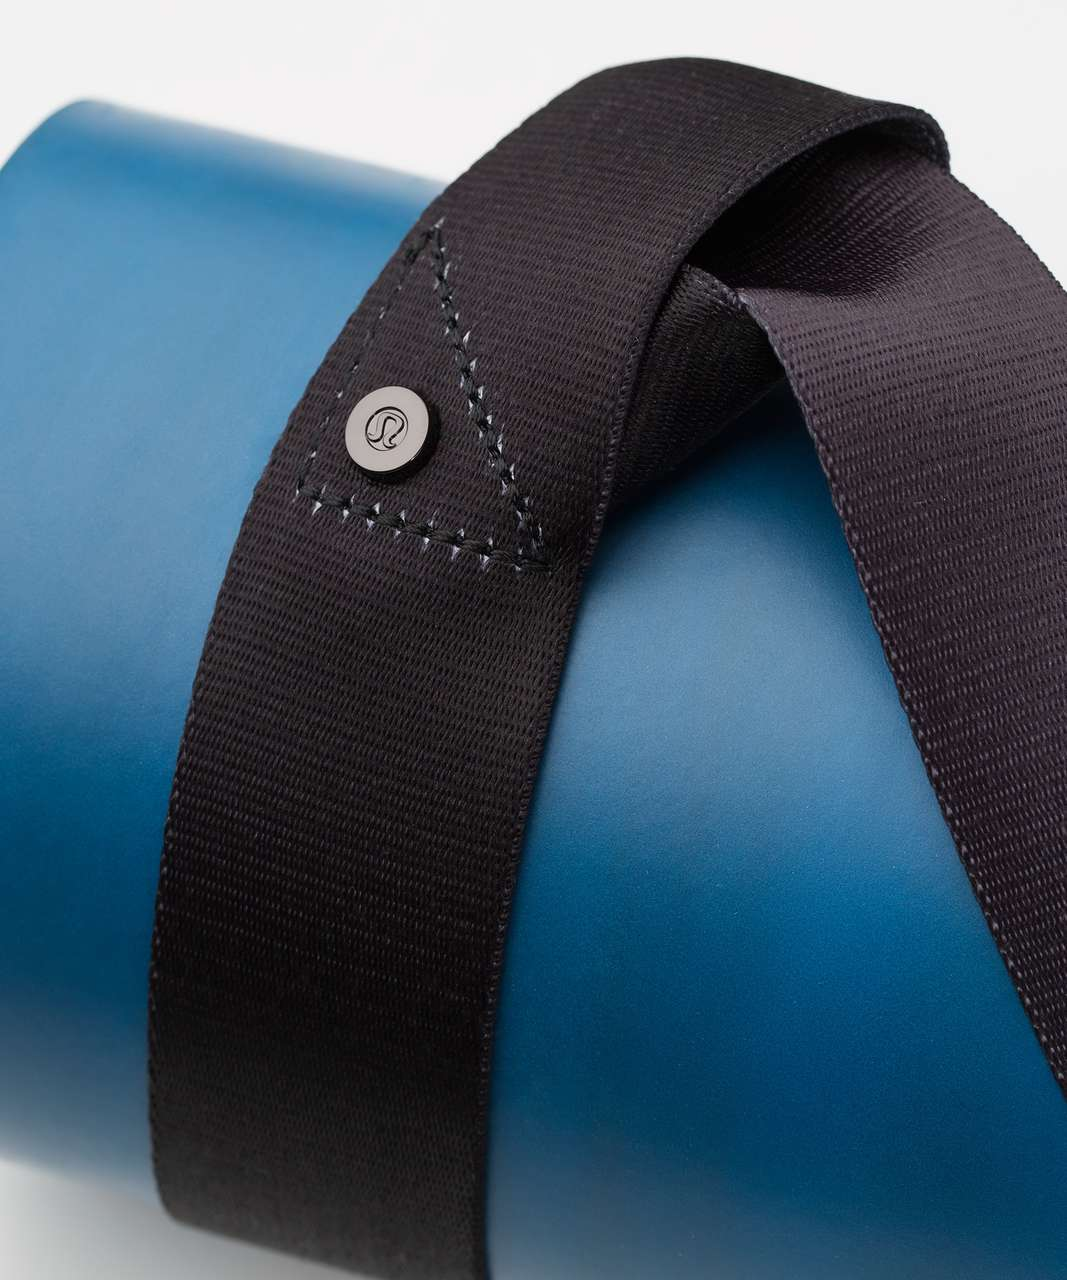 Lululemon Loop It Up Mat Strap - Hail / Black